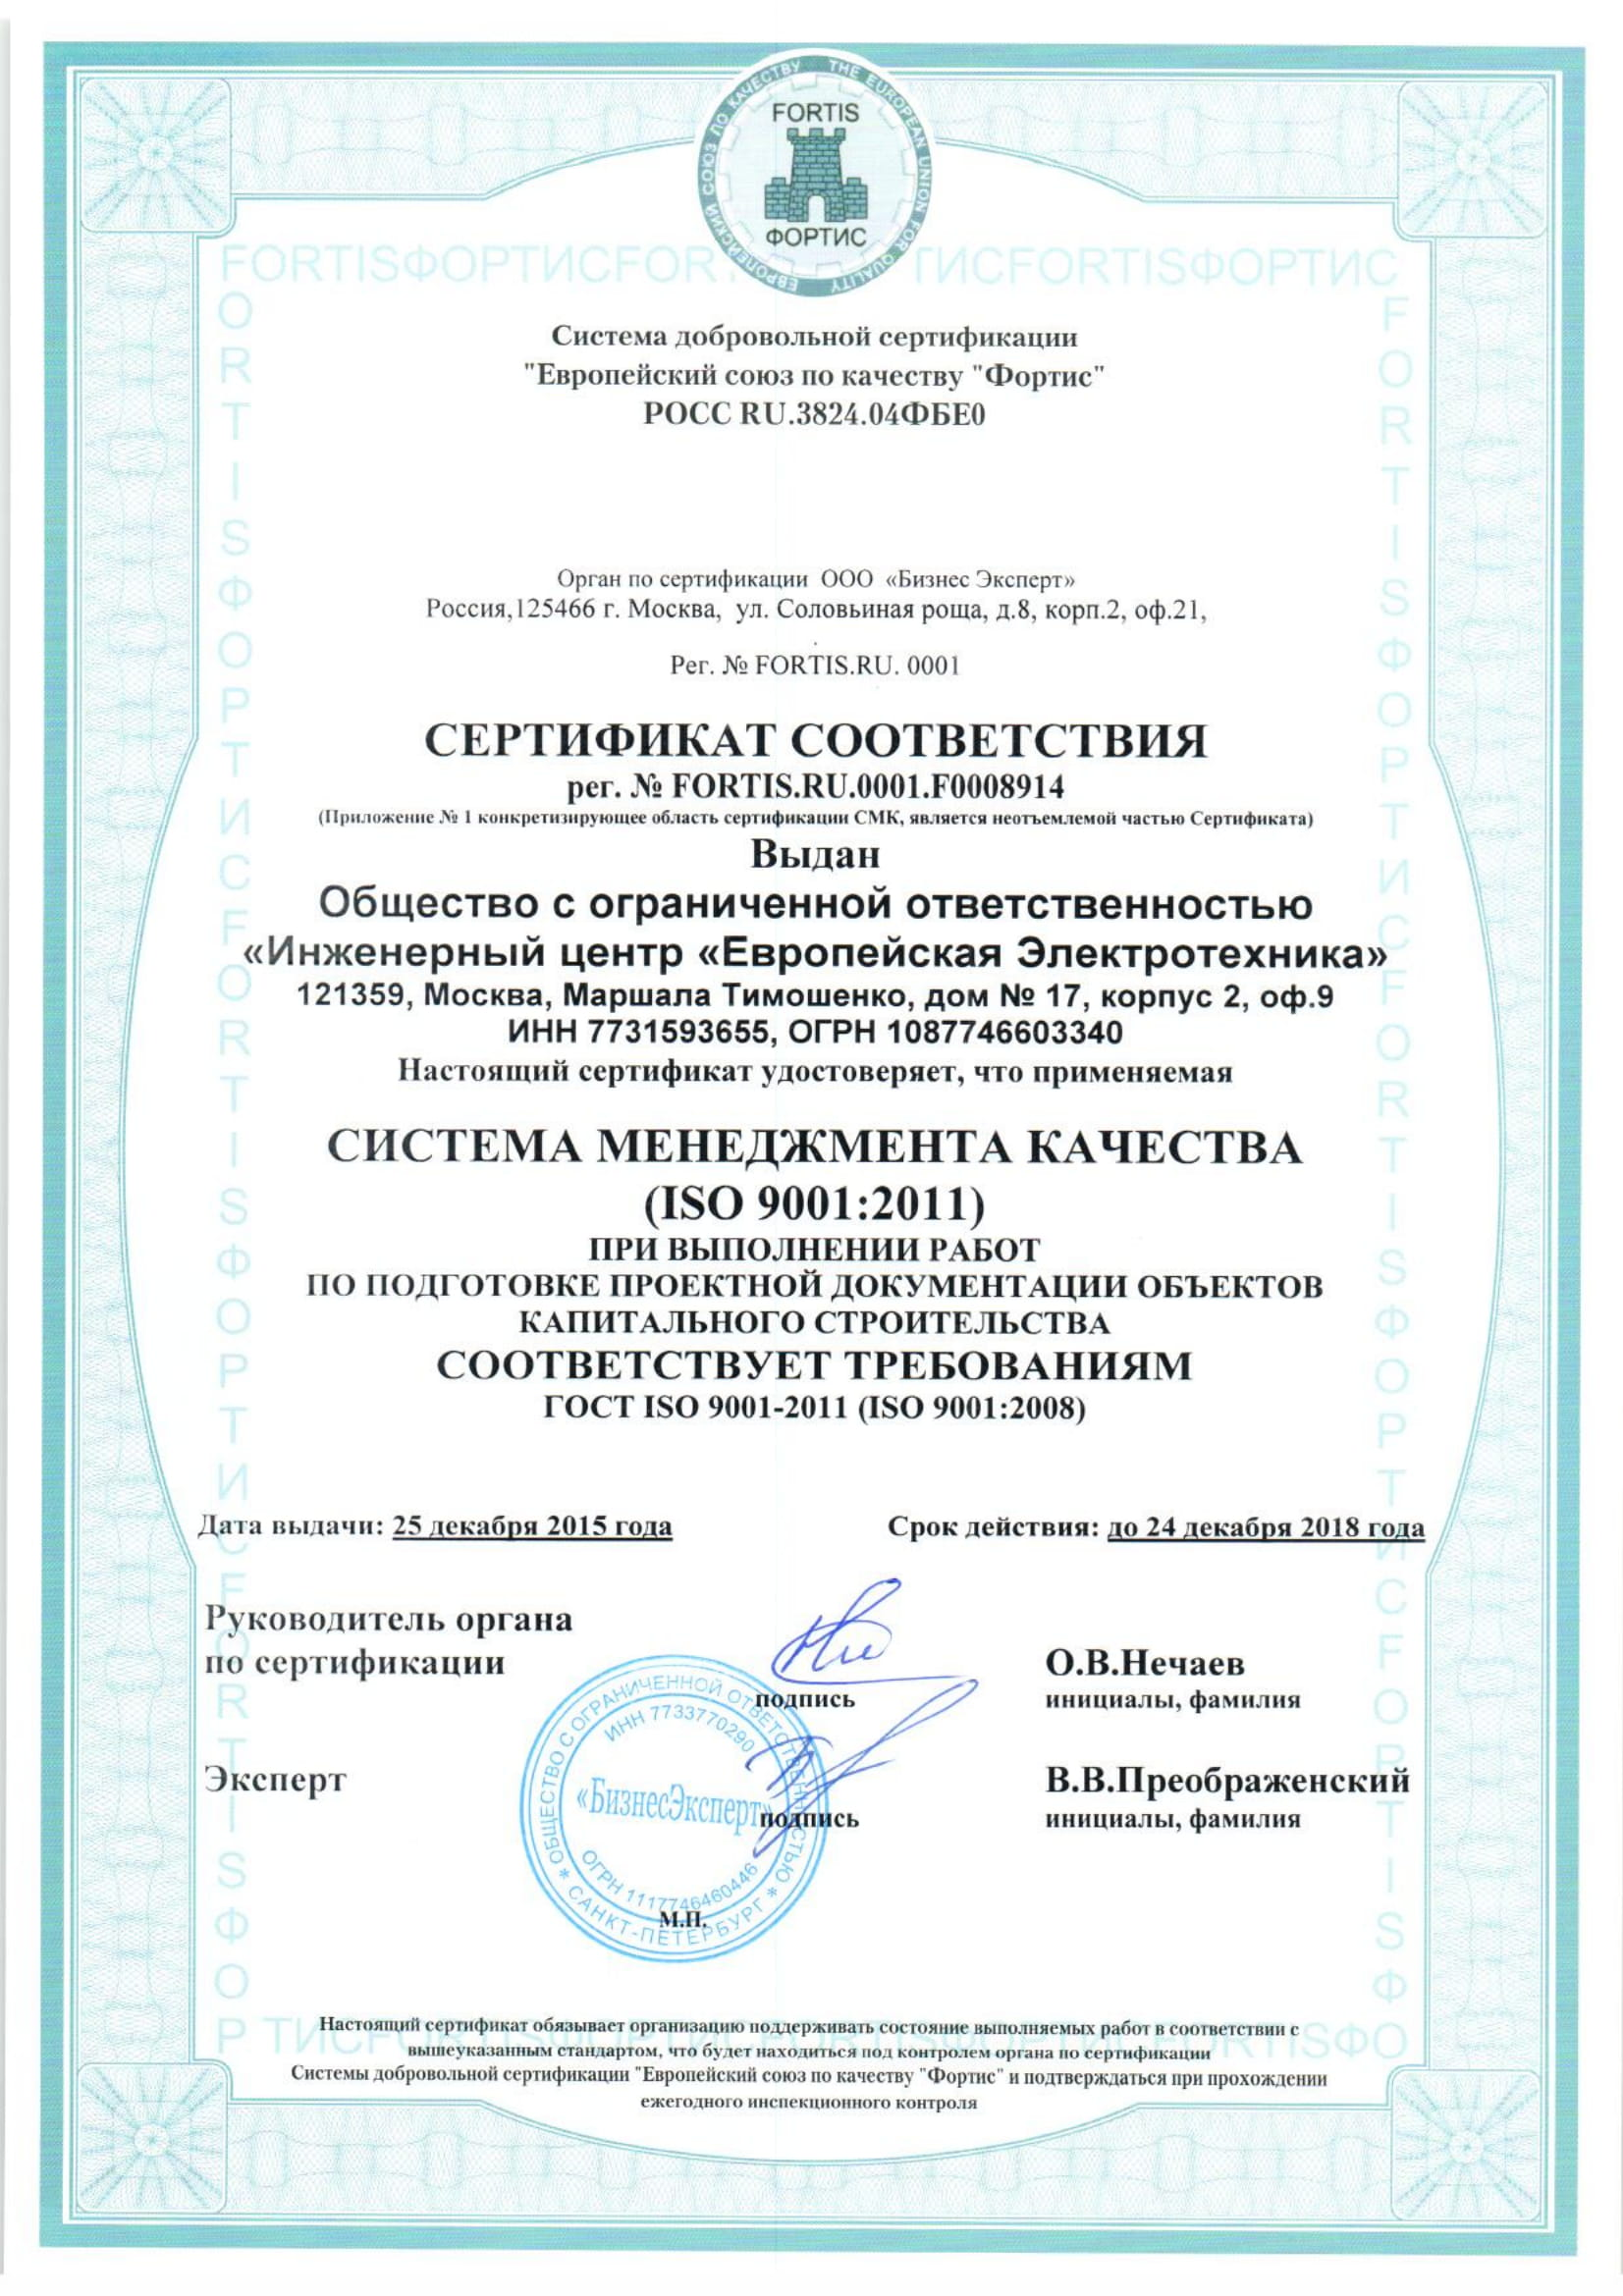 Certificate of Conformity to the Requirements of GOST ISO (Quality Management System)